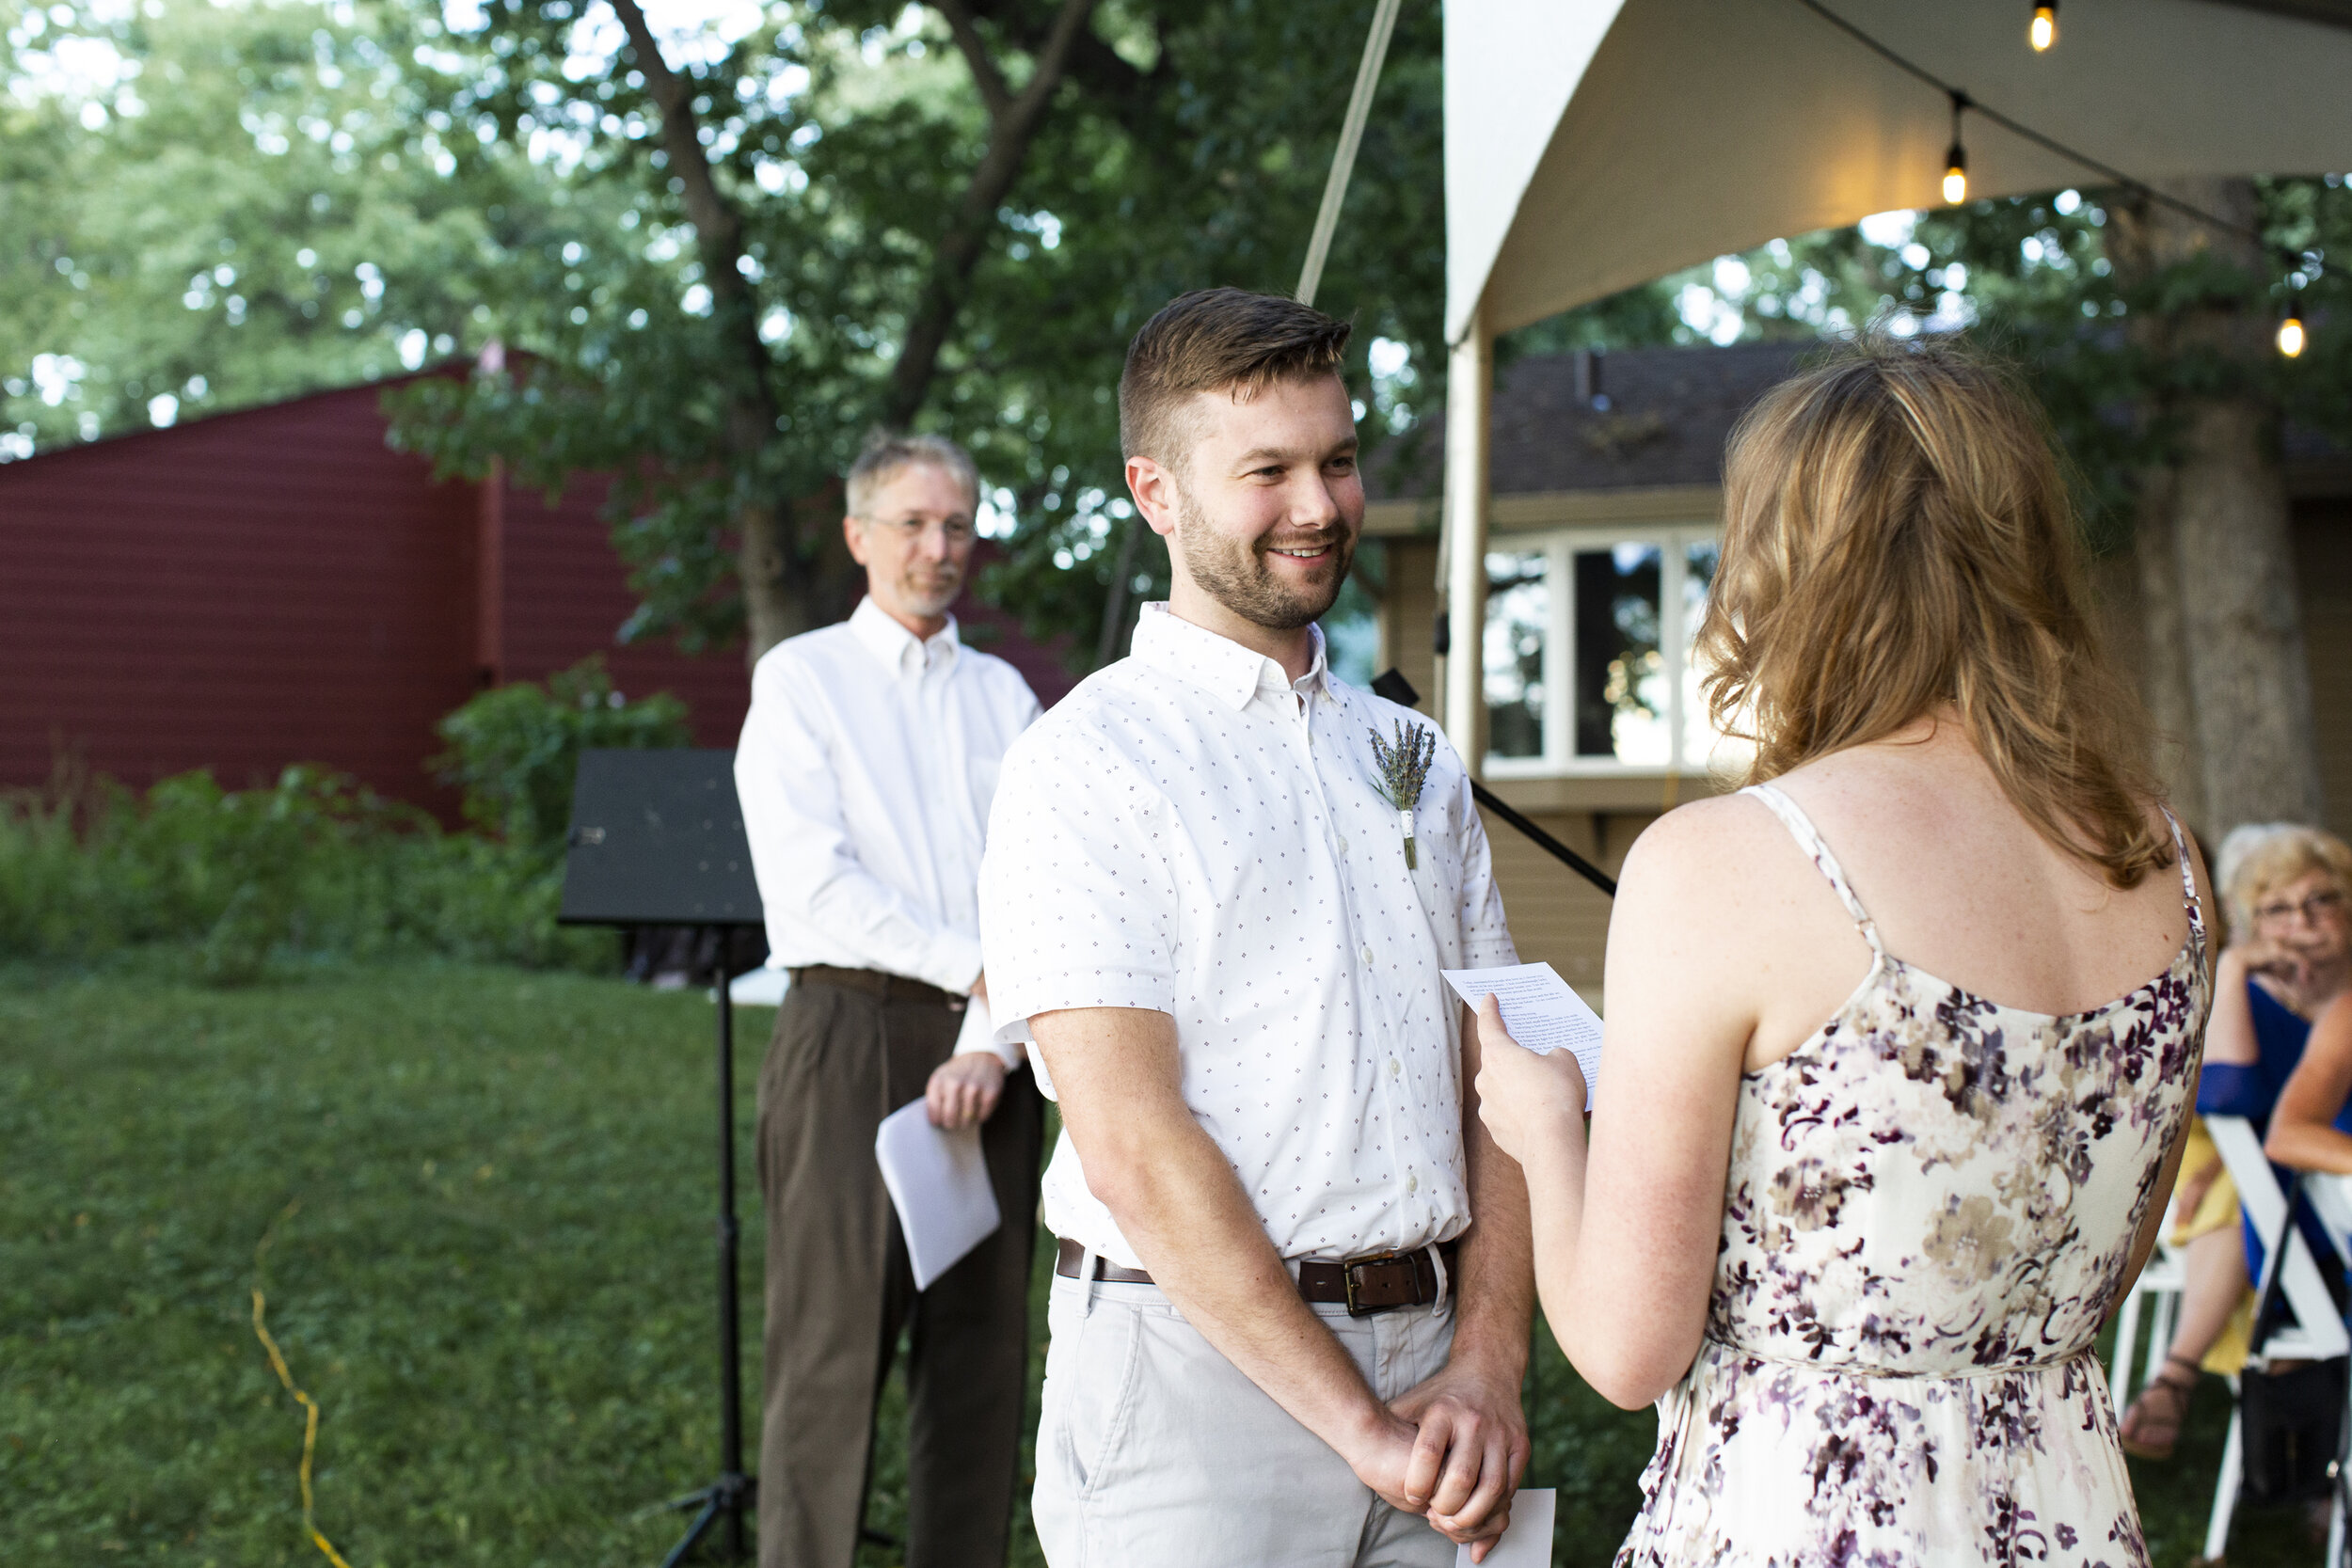 Home Wedding St. Paul | Rivets & Roses Wedding Photography | Photo by Jess Ekstrand